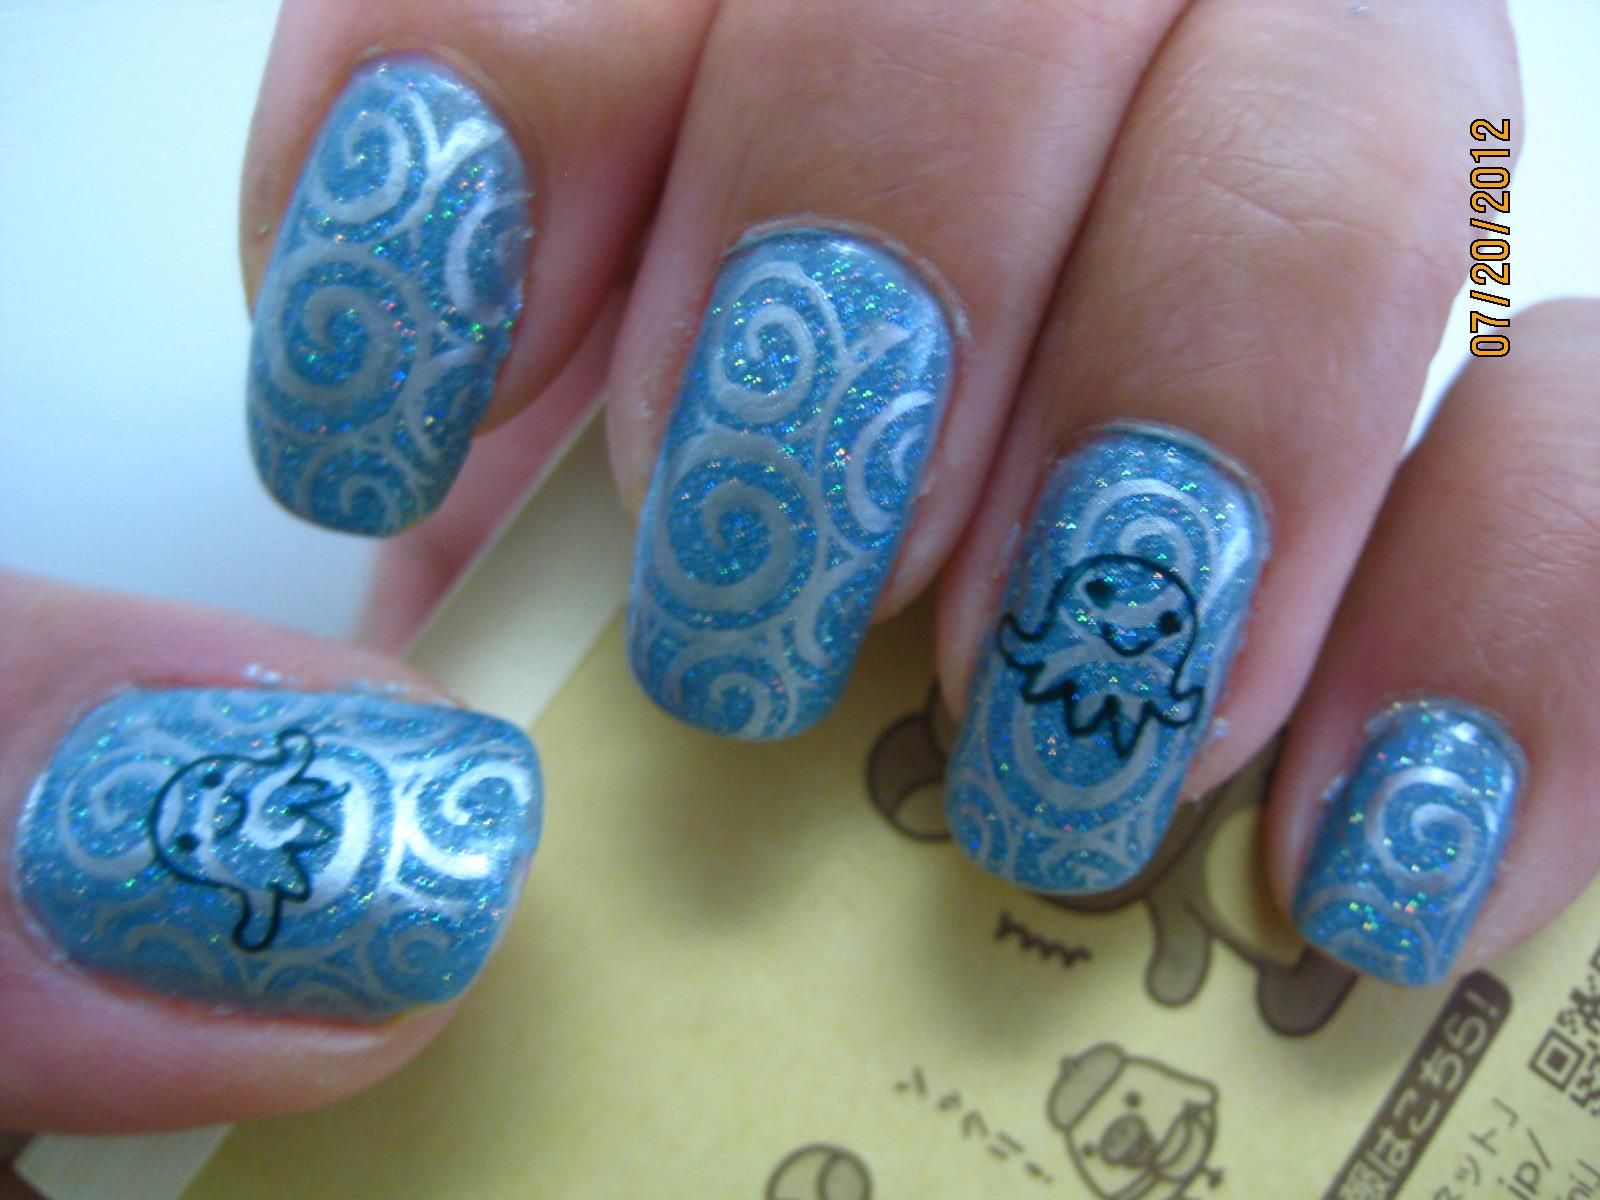 Nail Stamping. Plates are Mash-40 & Mash-37 from here: http://www ...